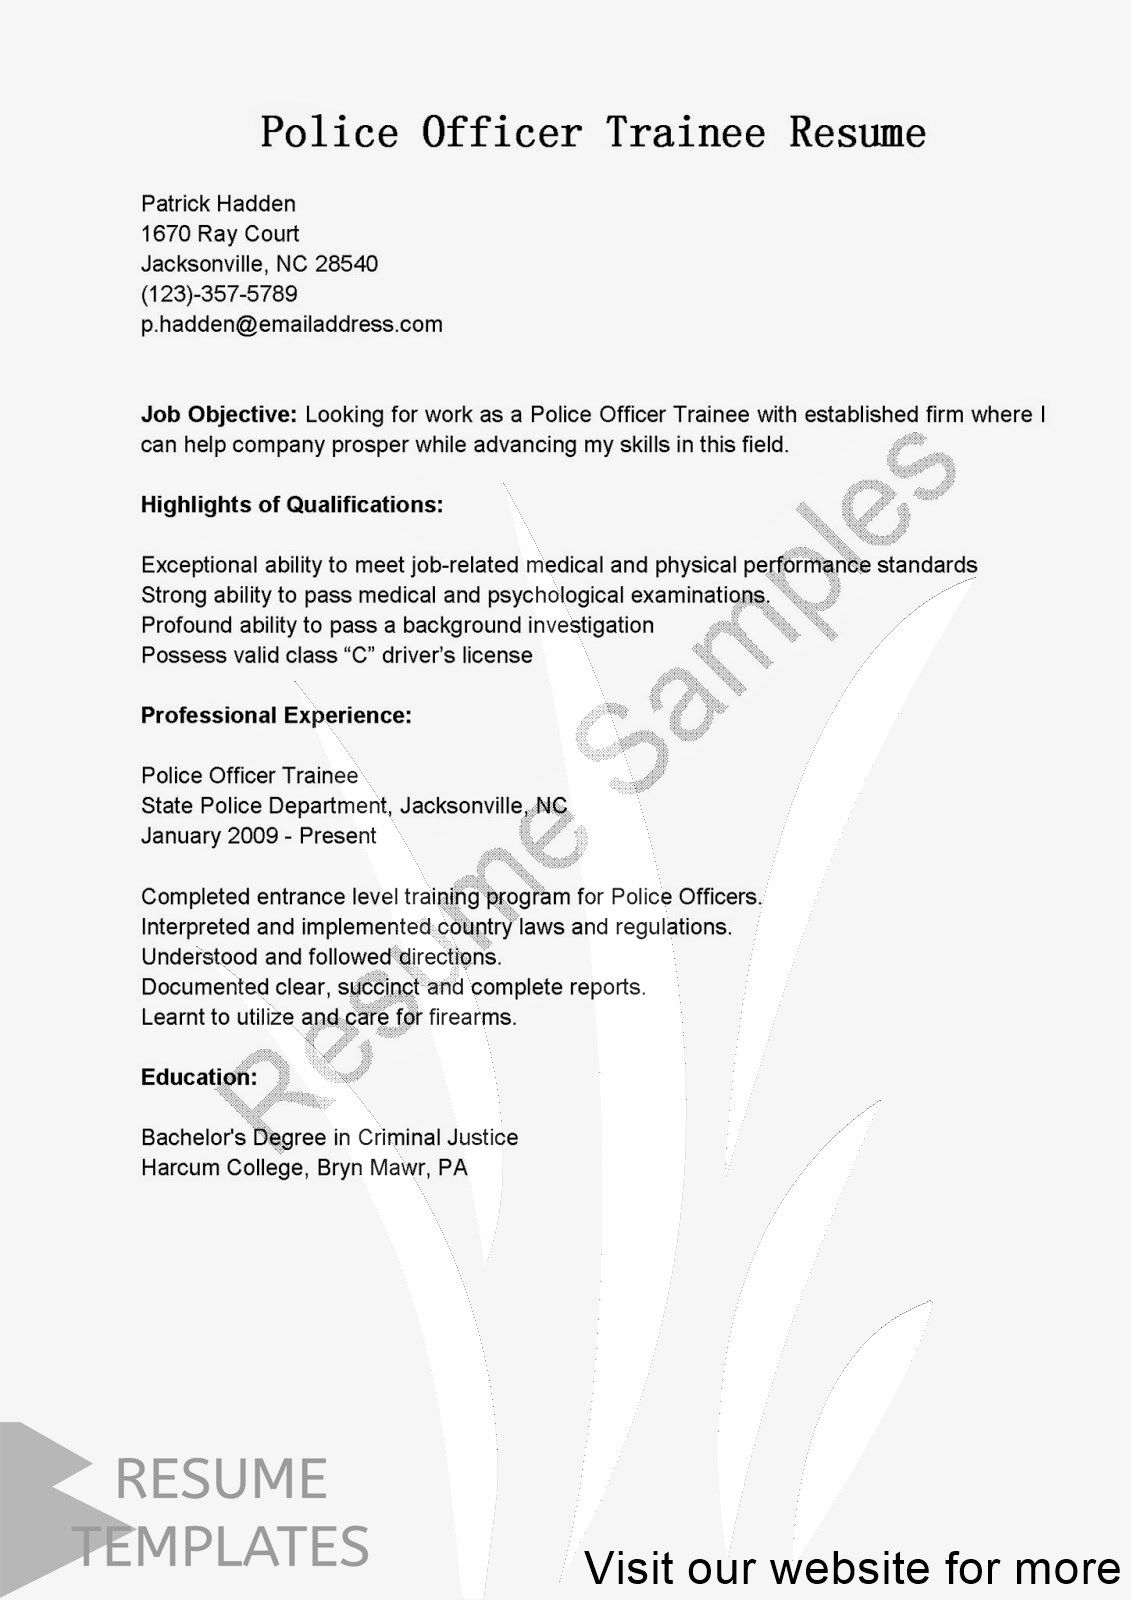 Simple Resume Template Australia In 2020 With Images Resume